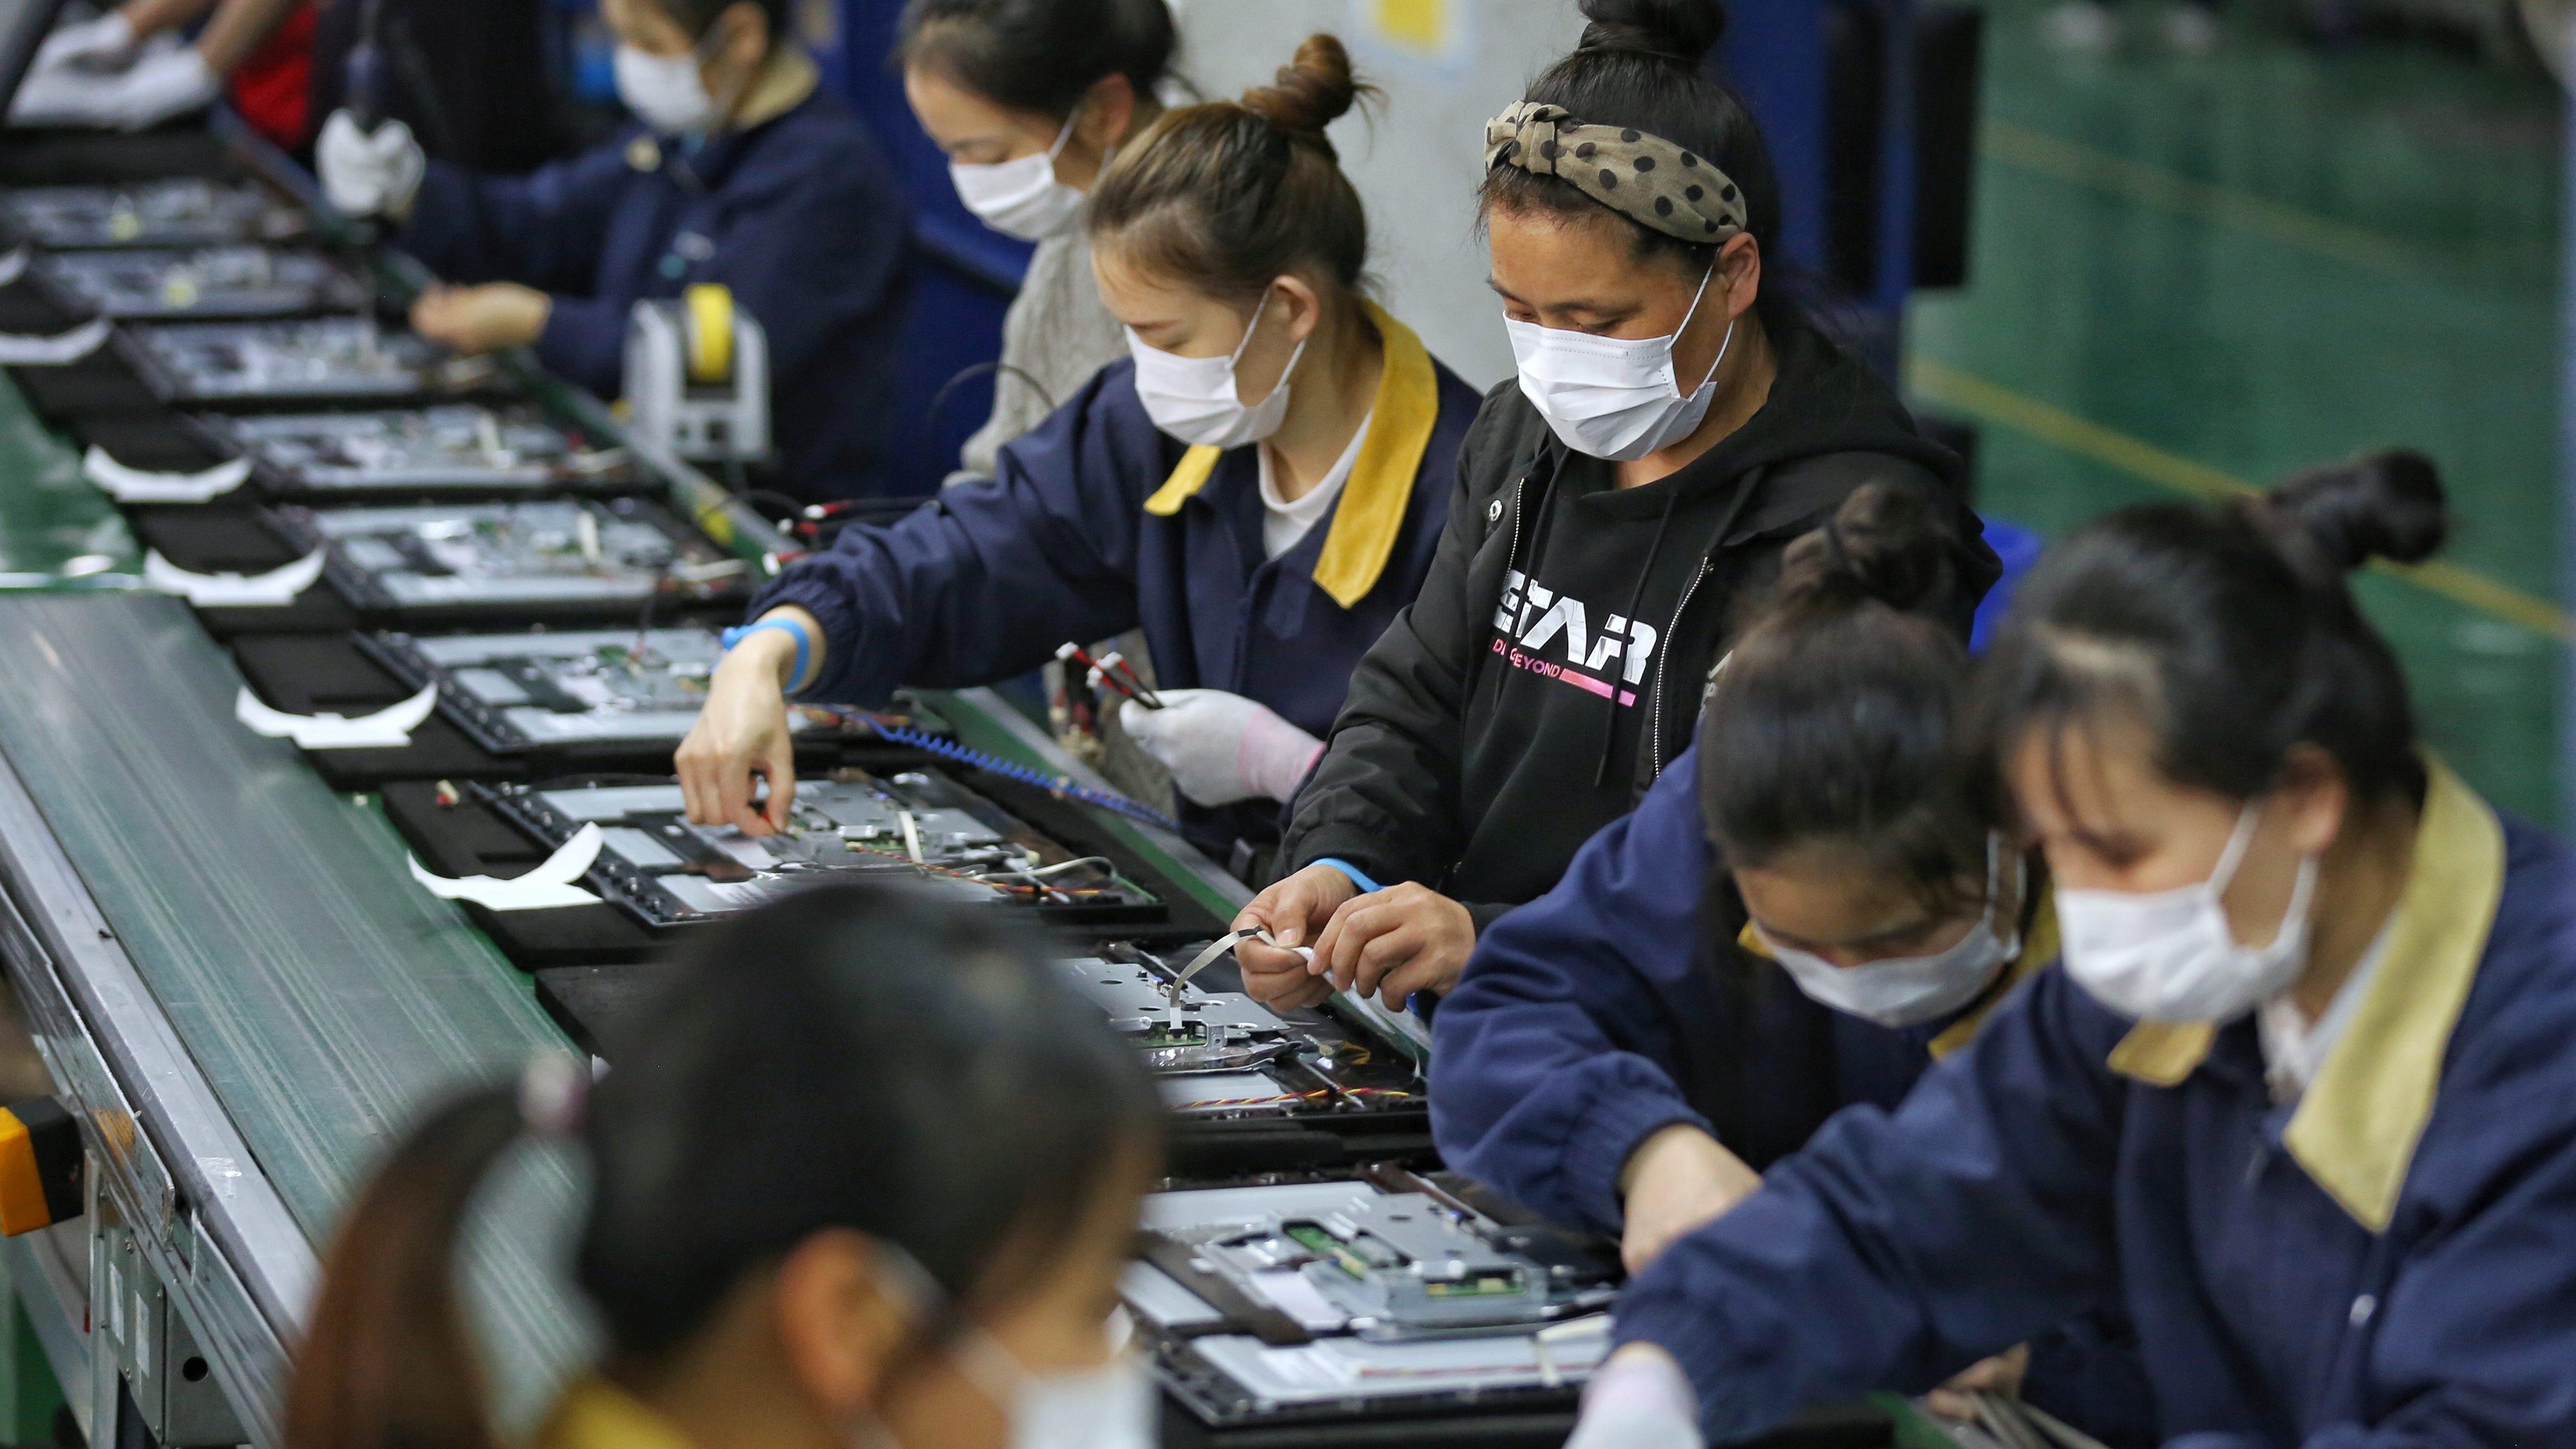 Employees, wearing masks, work on a production line manufacturing display monitors at a TPV factory in Wuhan